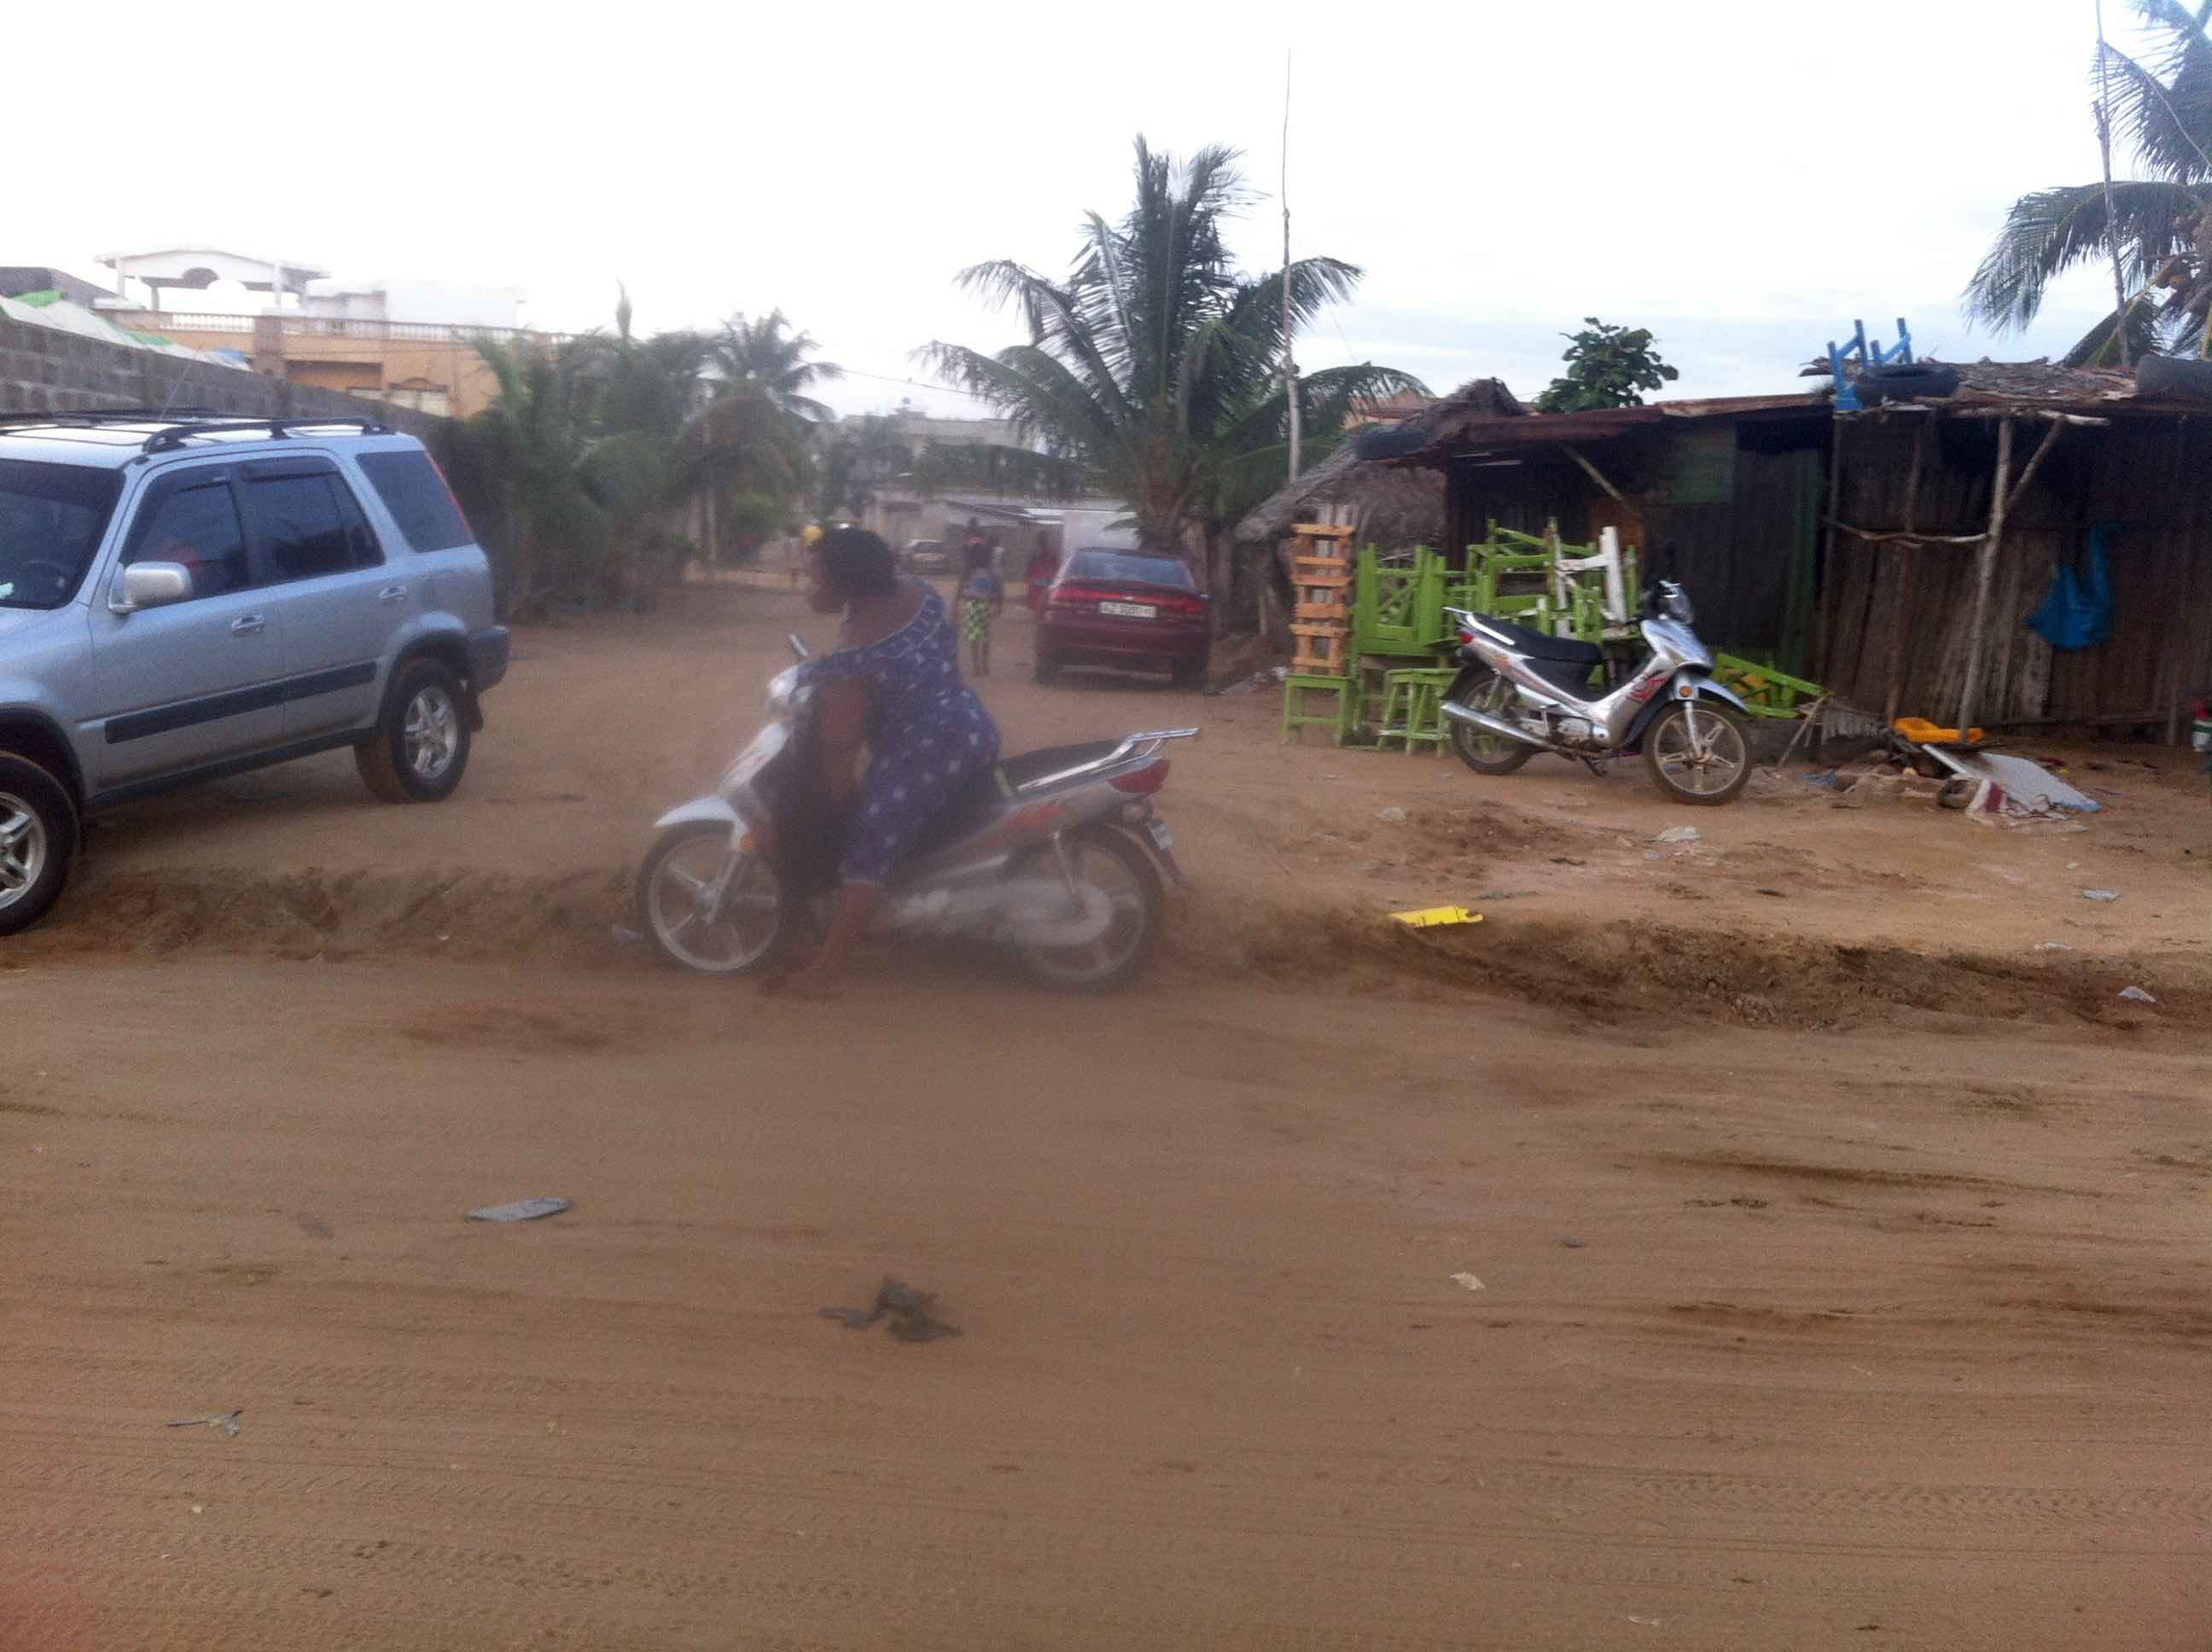 Female motorcyclist in Fidjrosse Beach, Cotonou Cadjehon Airport, Littoral Department, Benin. #JujuFilms